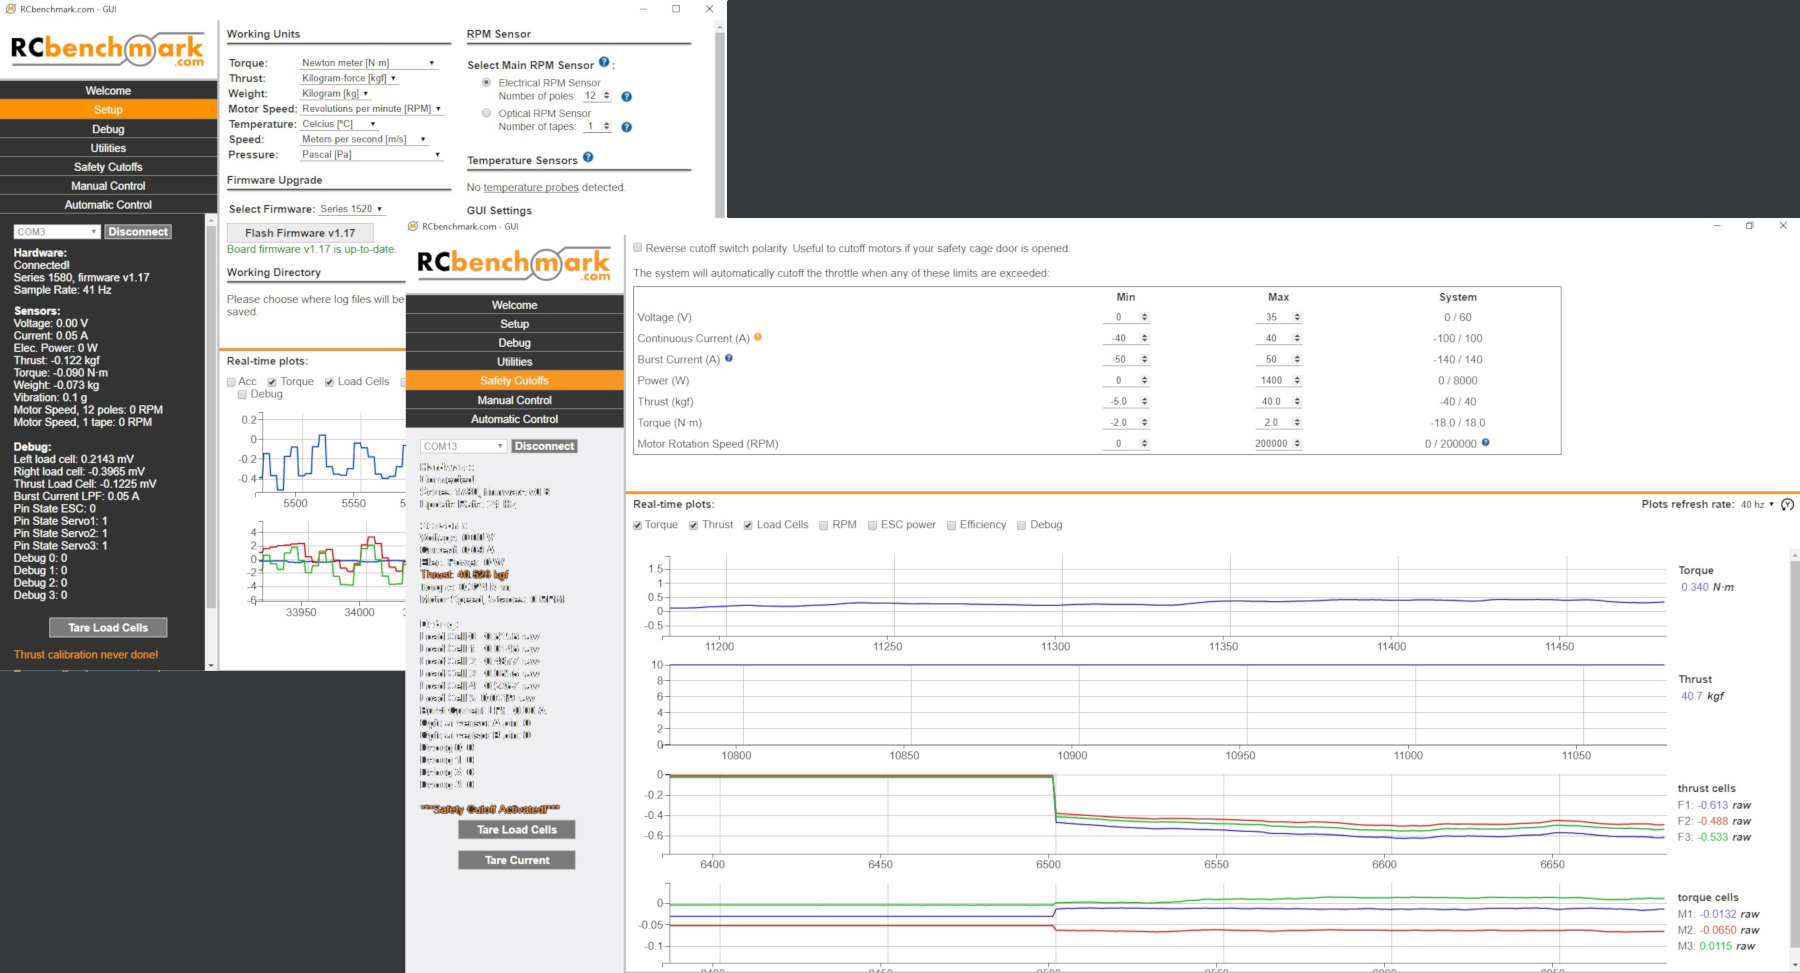 RCbenchmark data acquisition software